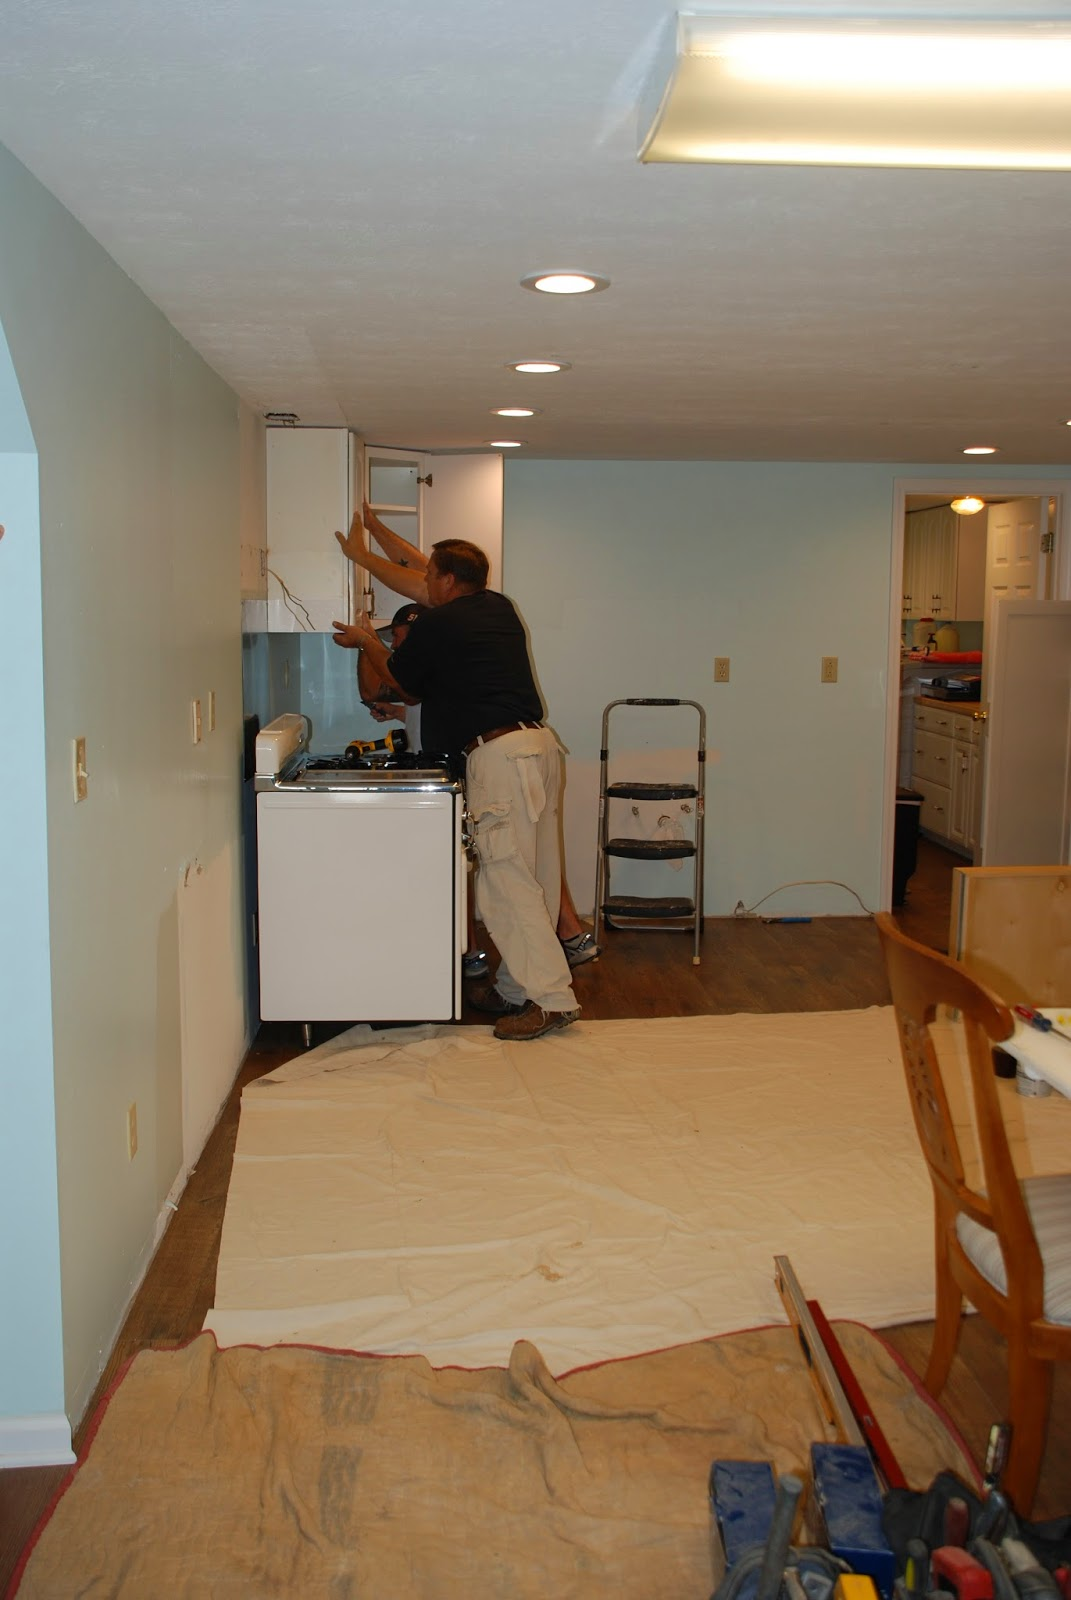 One Kitchen Cabinet possibilities: phase one: kitchen cabinet installation